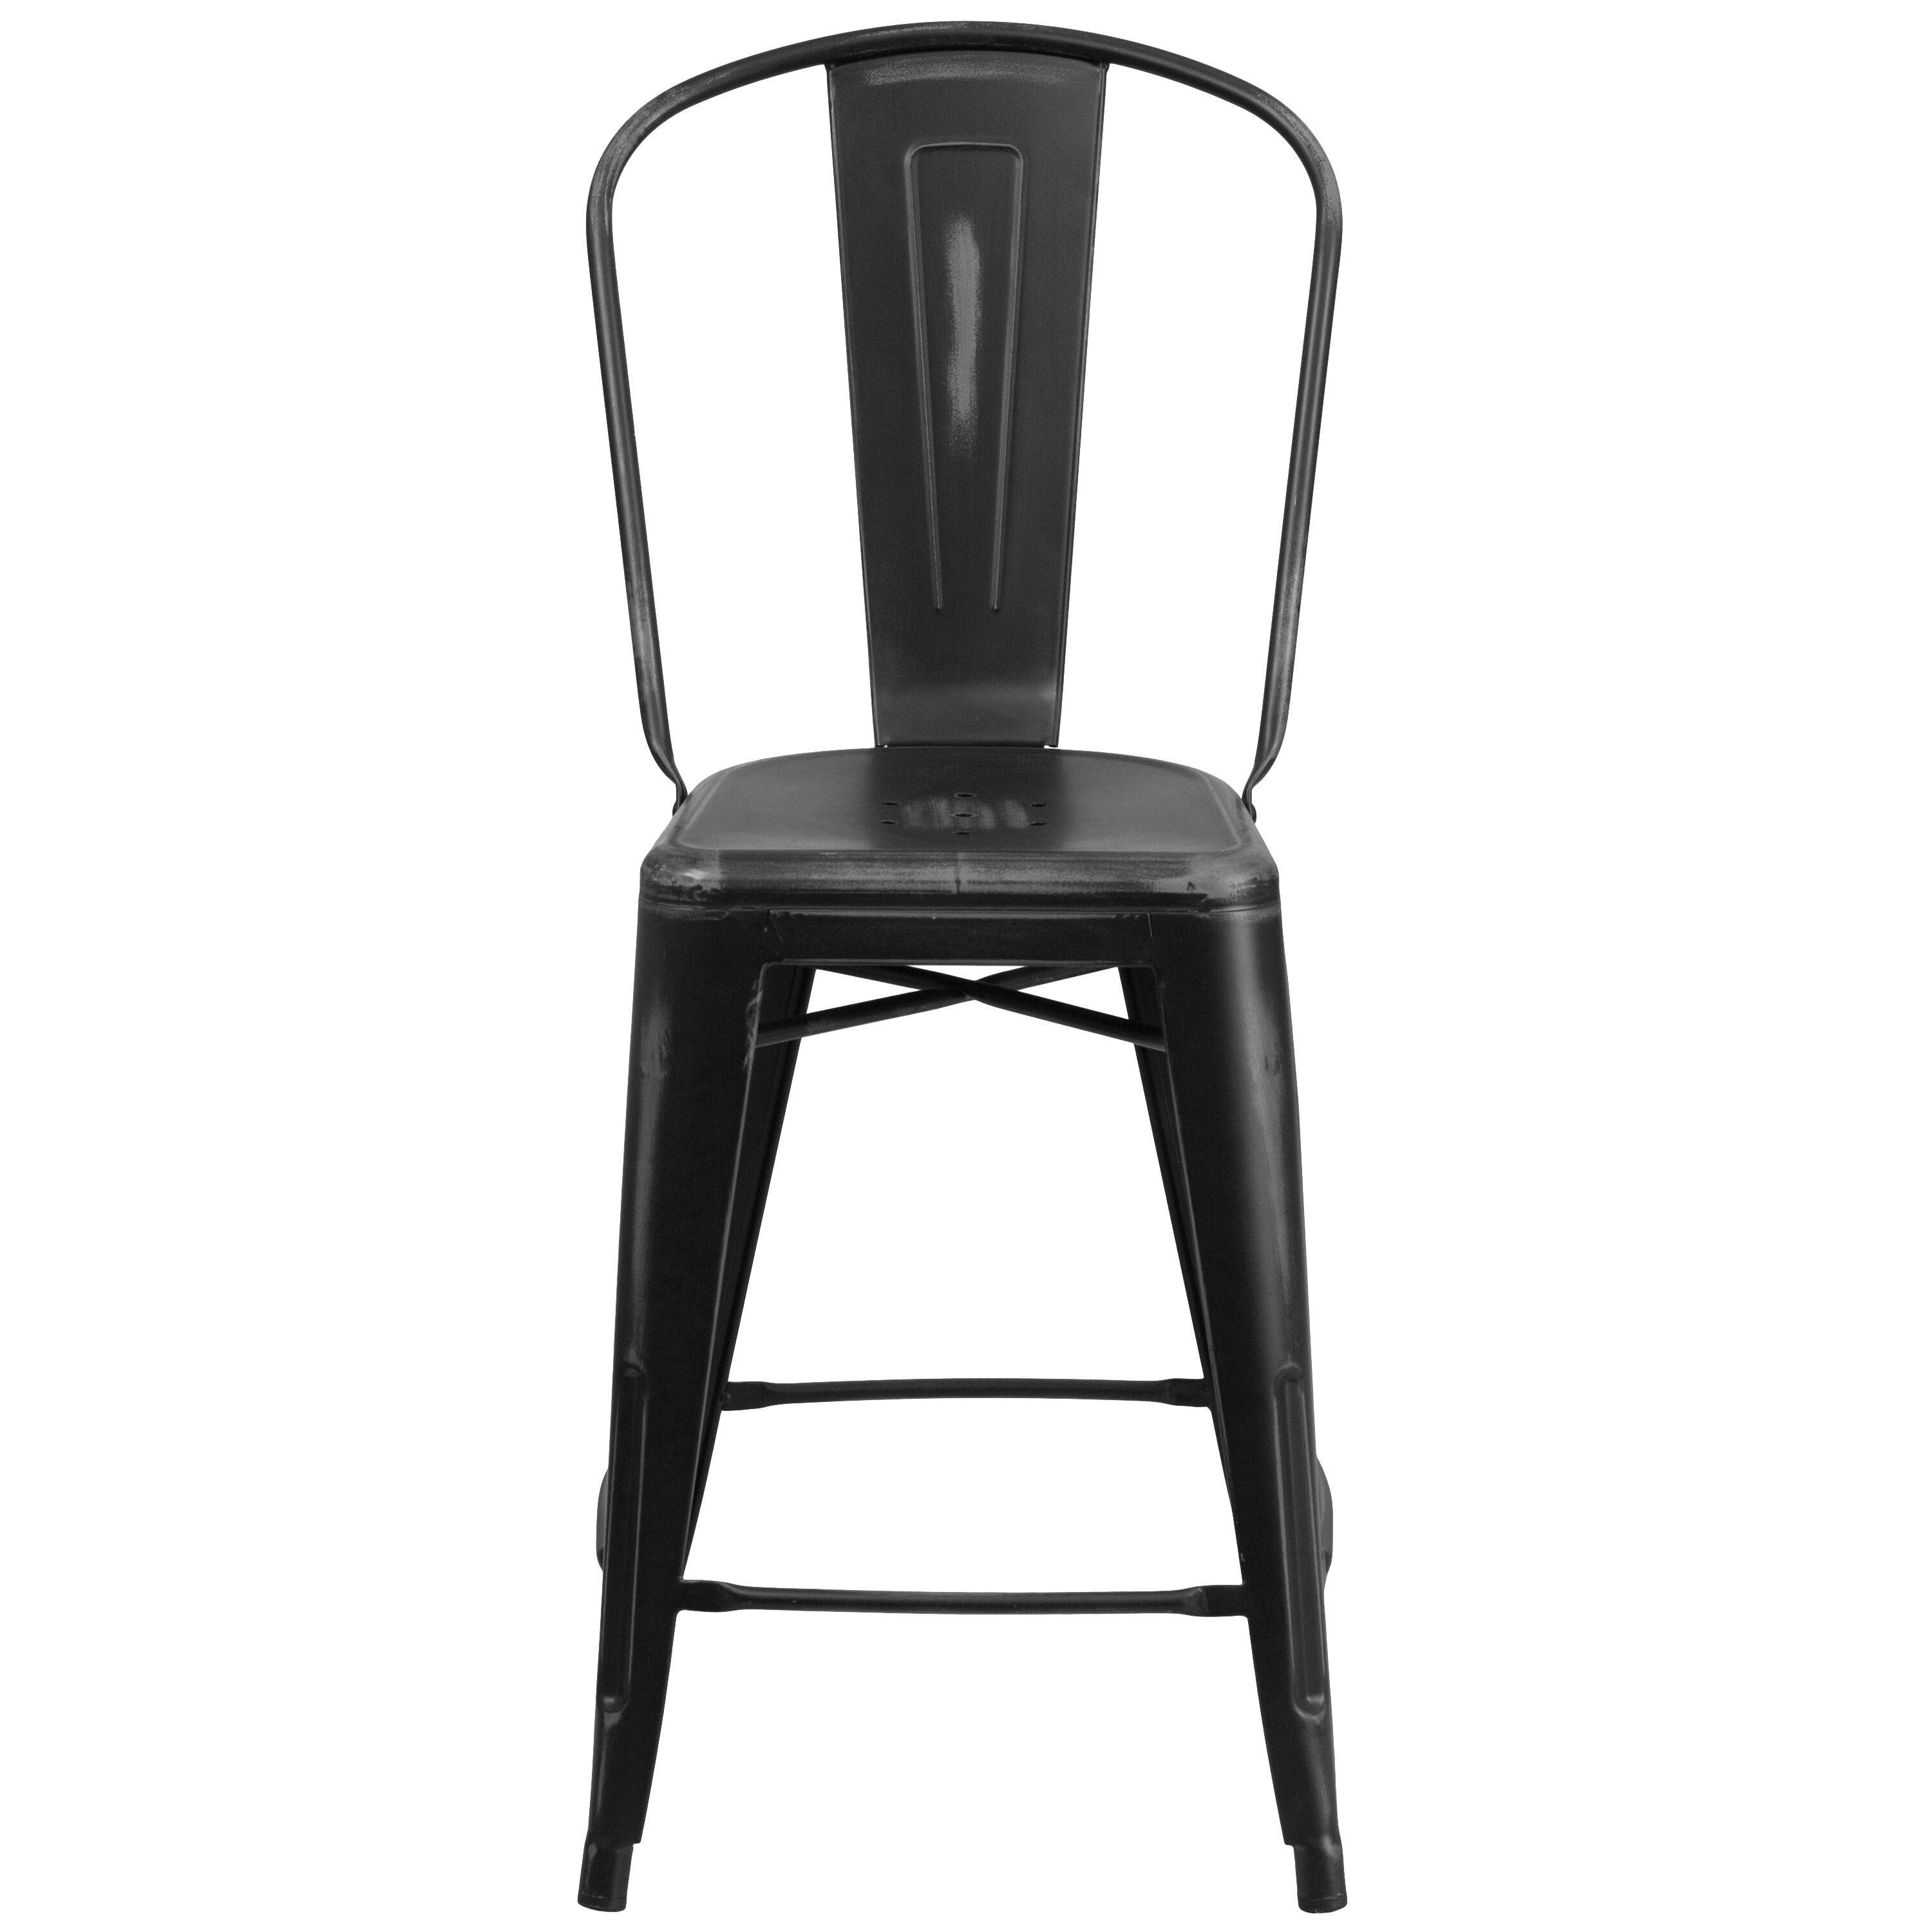 Charmant ... Our 24u0027u0027 High Distressed Black Metal Indoor Outdoor Counter Height Stool  With Back